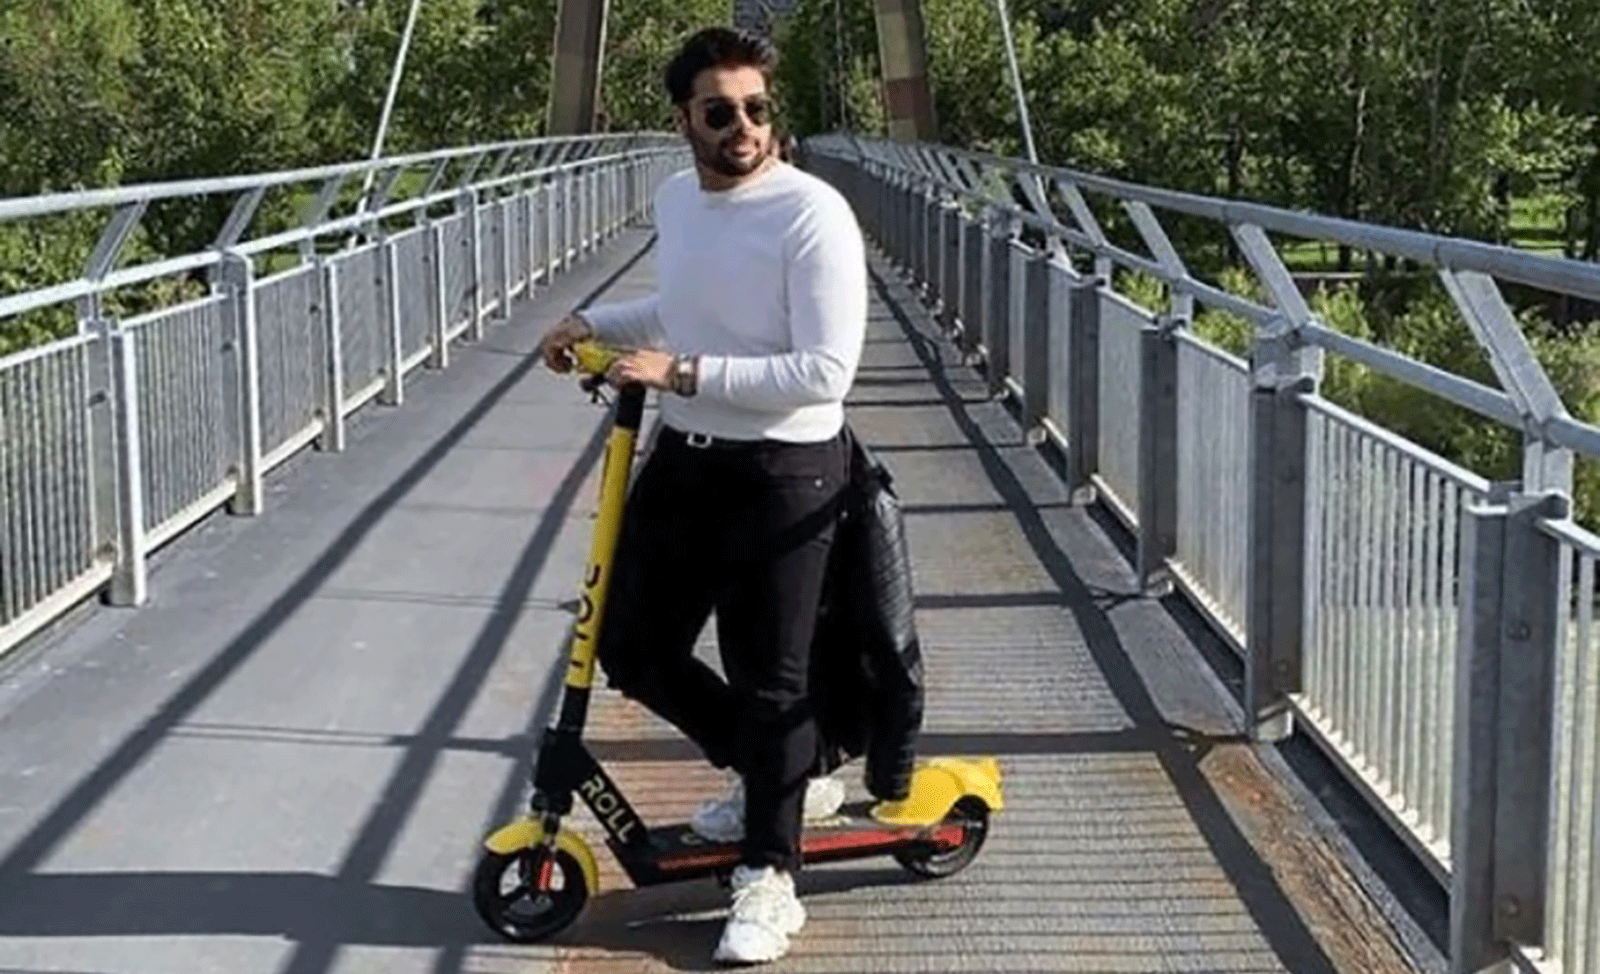 Roll E-Scooters